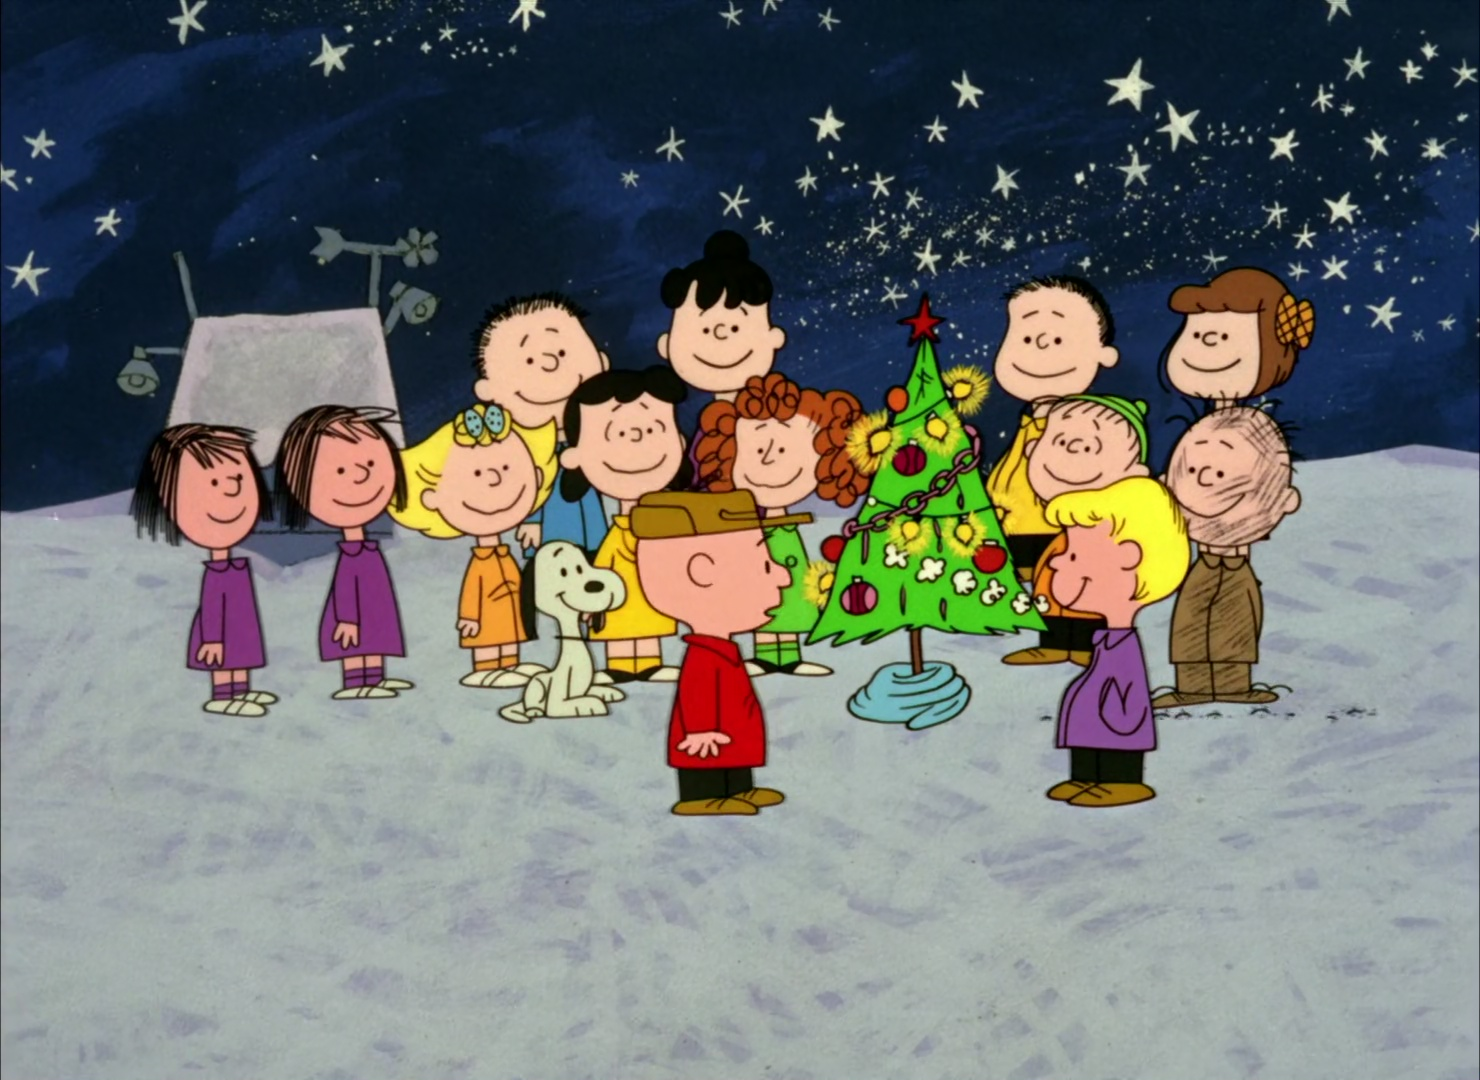 a charlie brown christmas 5 things that catches my attention - Charlie Browns Christmas